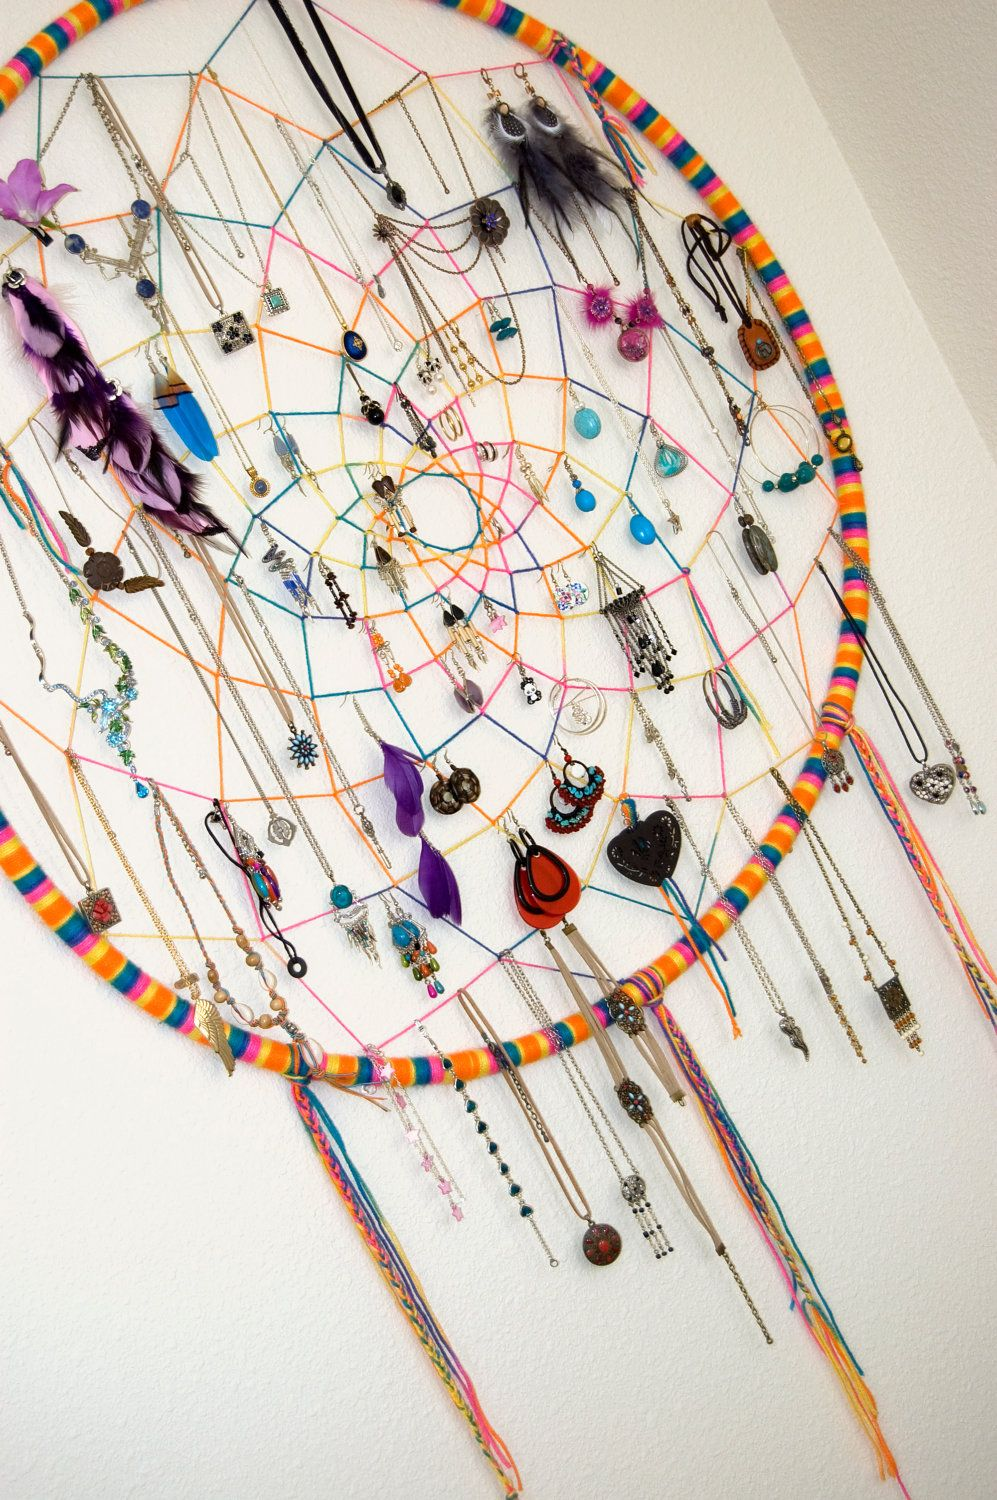 Custom Large Dreamcatcher Hula Hoop Earring Necklace Jewelry Holder Hippie  Bohemian $3600, Via Etsy